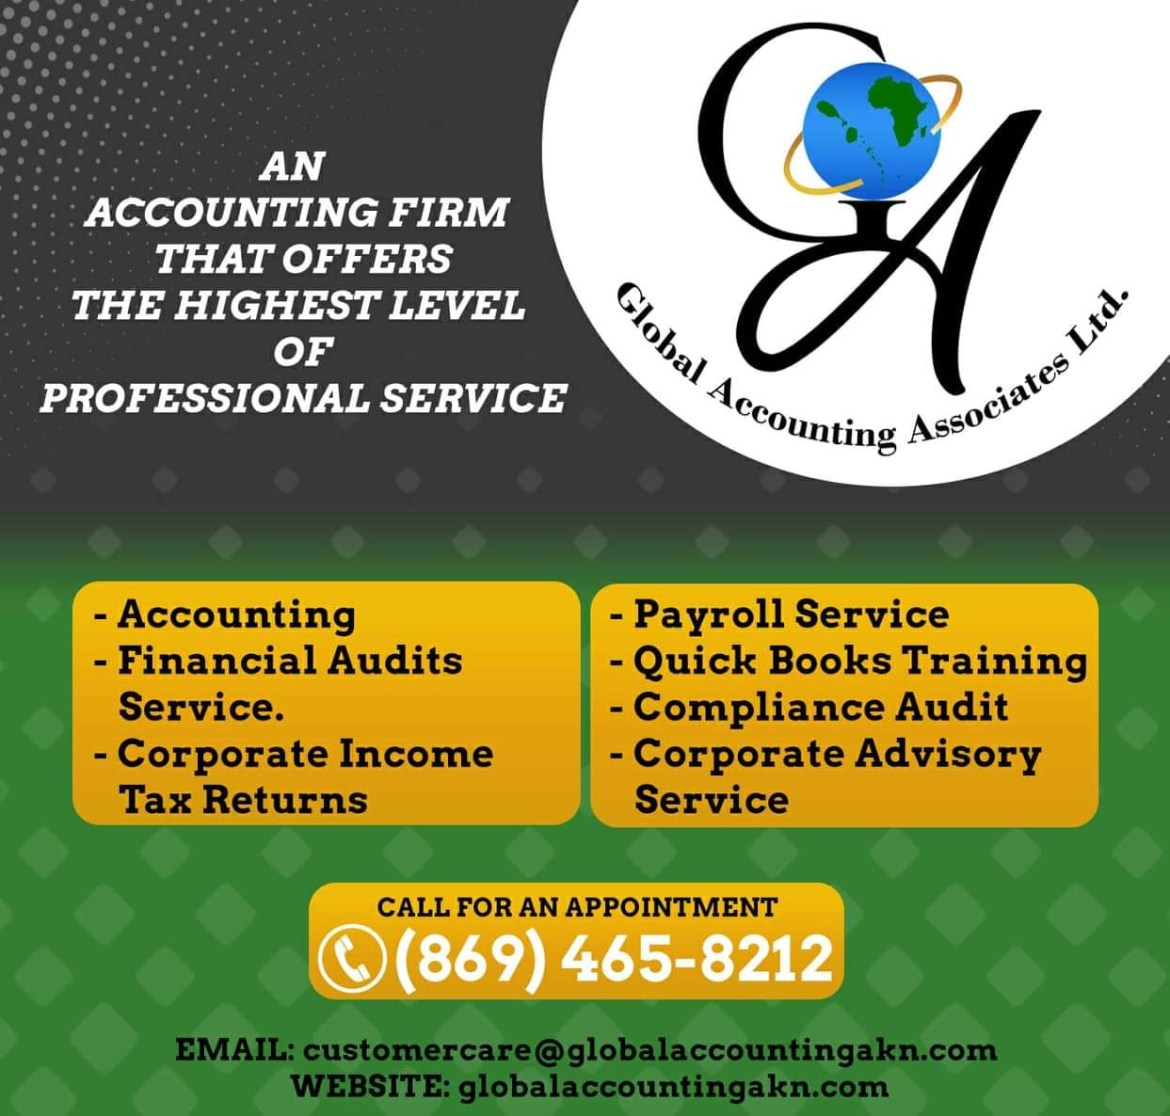 Global Accounting Associates Ltd